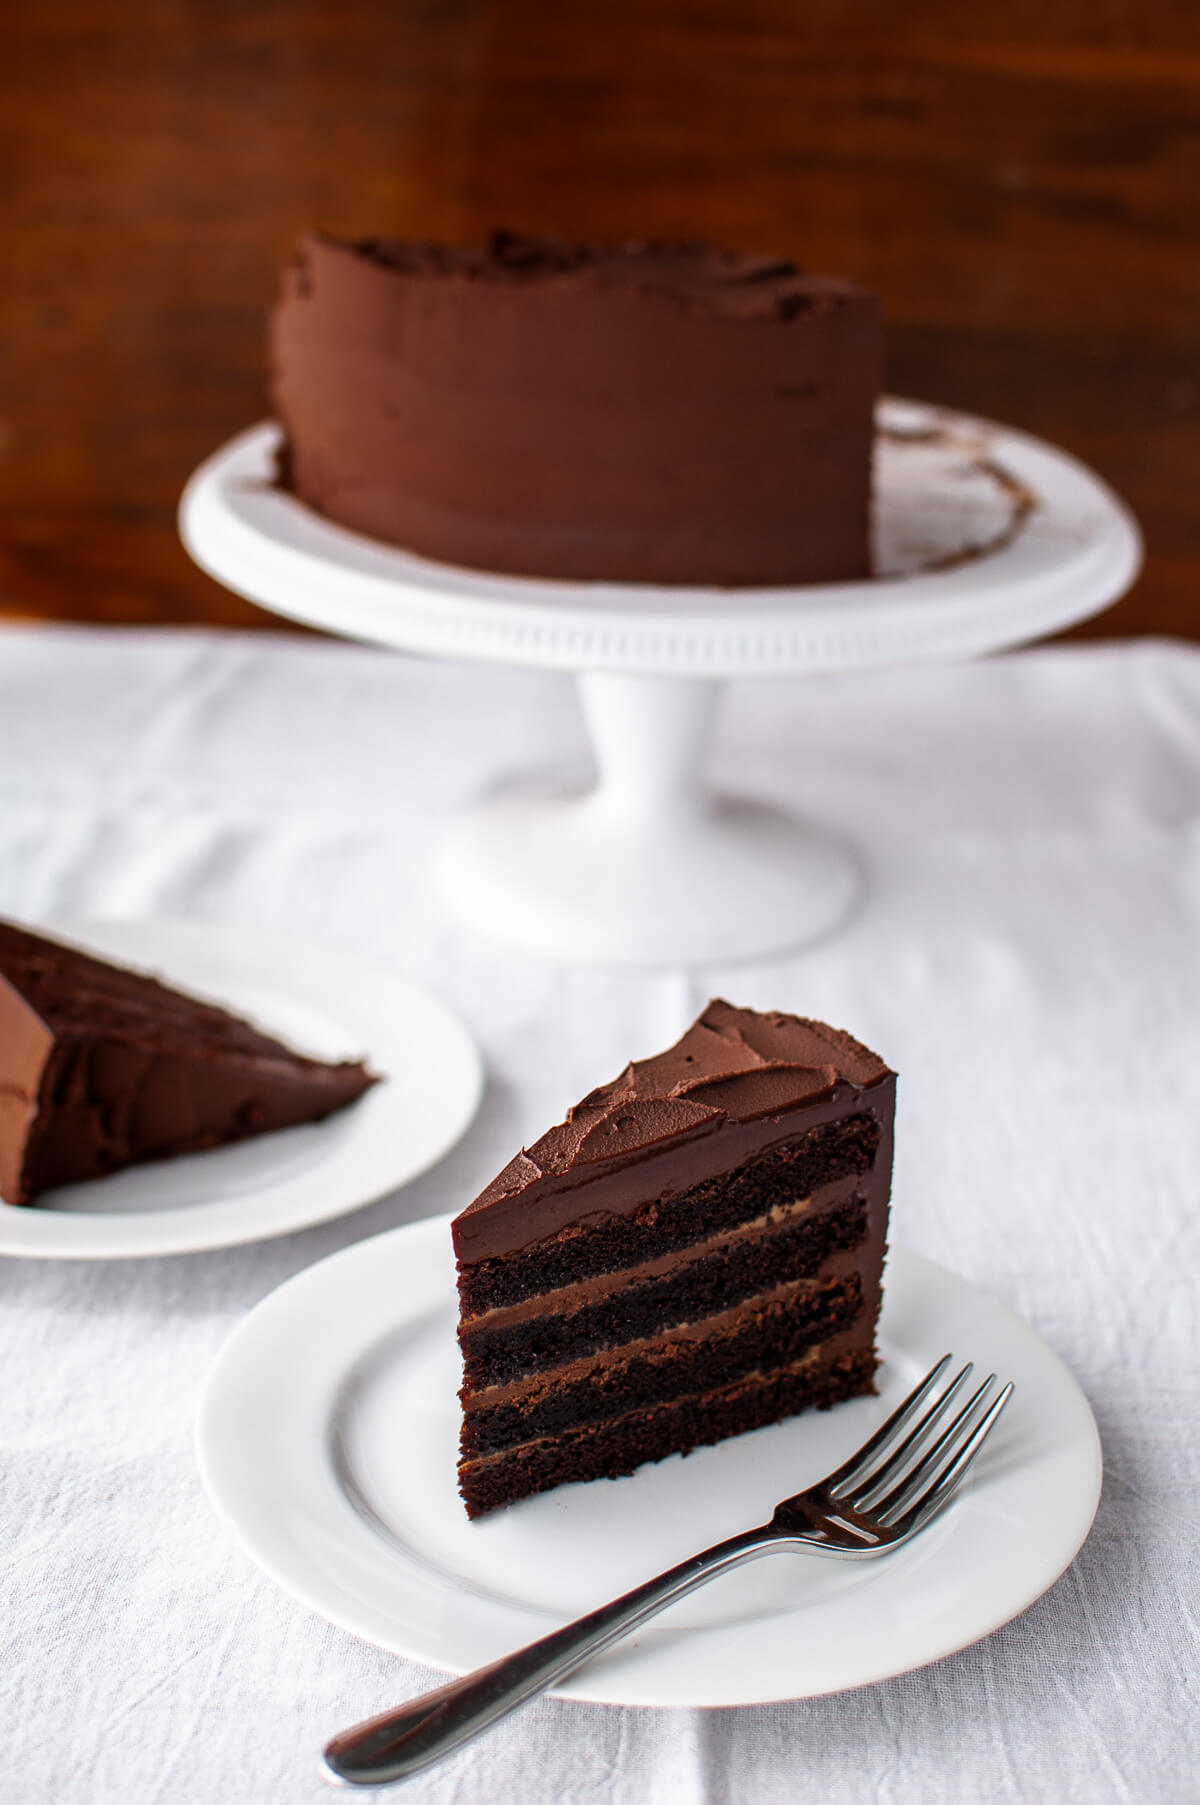 A slice of chocolate cake with caramel filling on a white plate next to a cake on a cake stand.